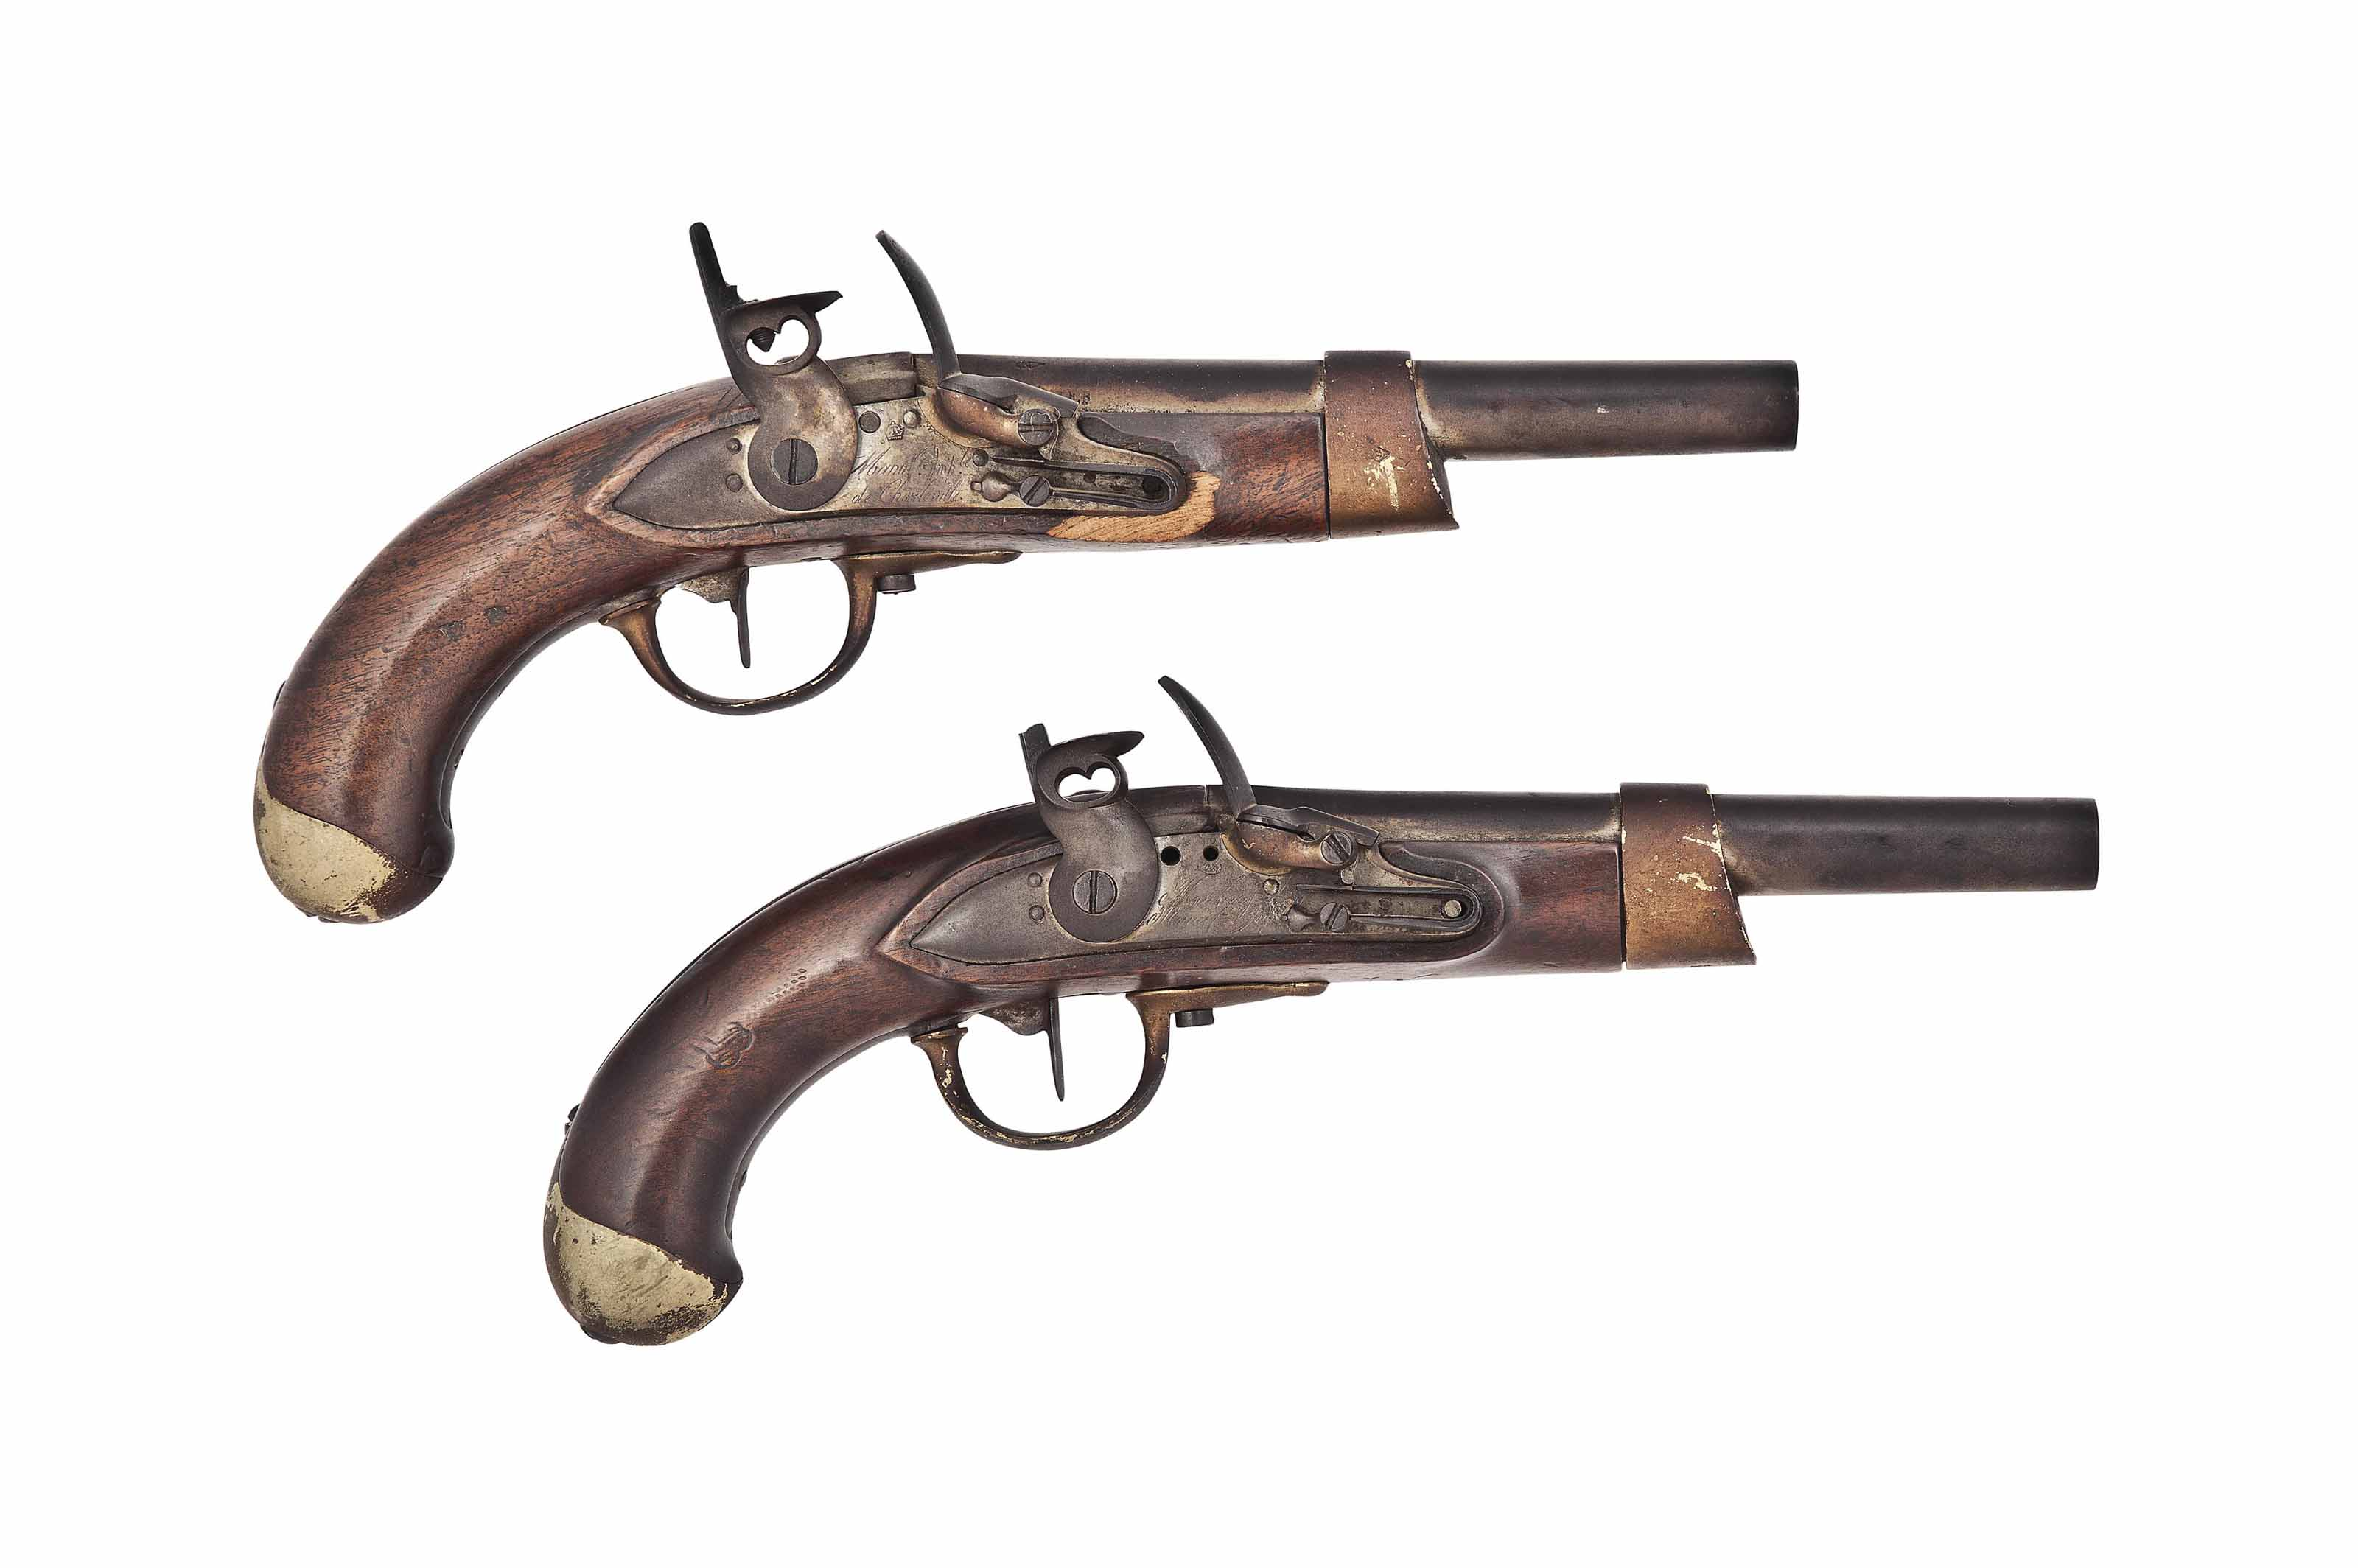 TWO FRENCH FIRST EMPIRE 17mm MODEL 'AN.13' FLINTLOCK SERVICE PISTOLS